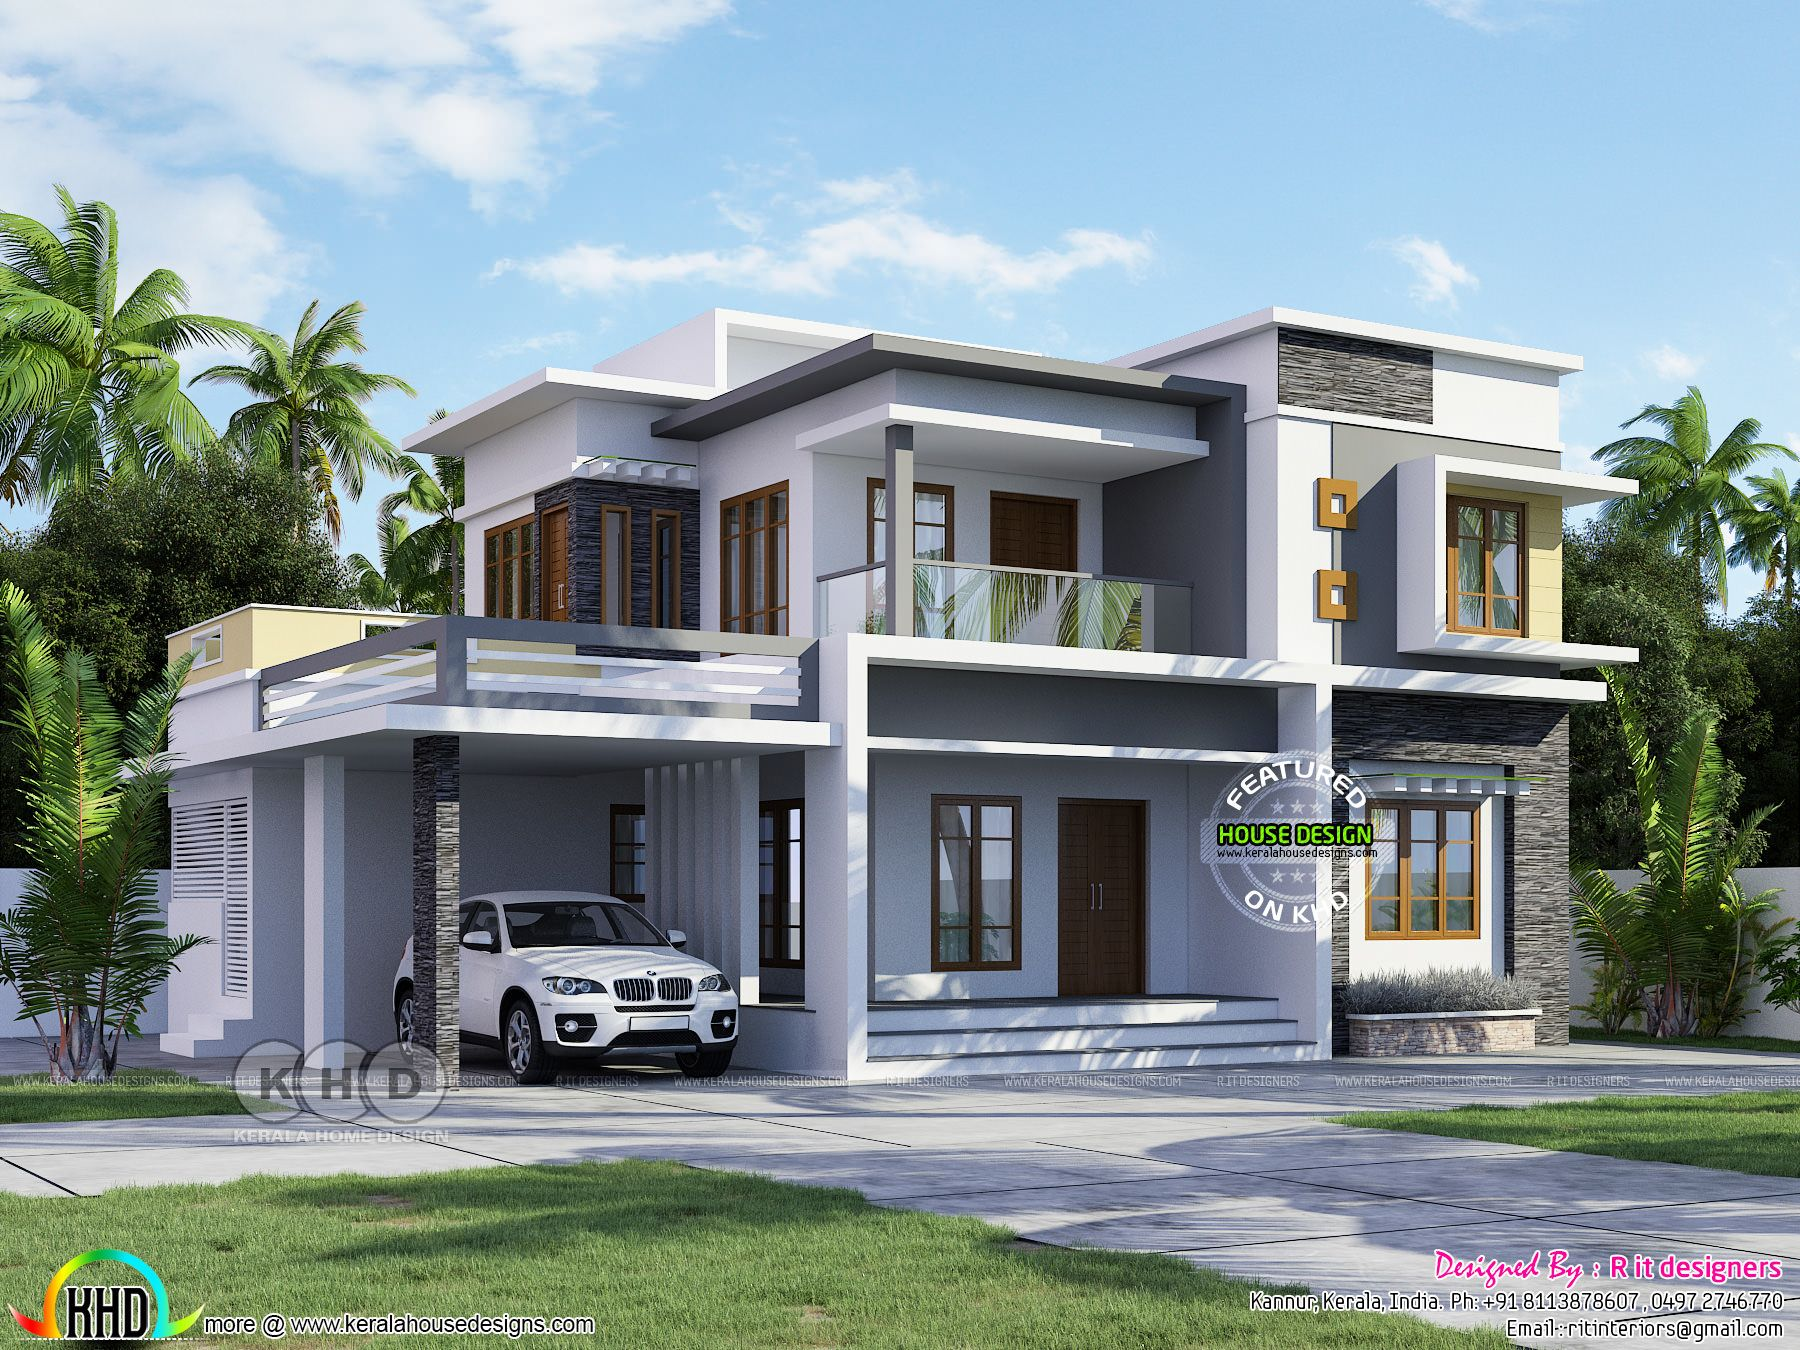 67 000 Cost Estimated Flat Roof House Modern Exterior House Designs Flat Roof House House Front Design